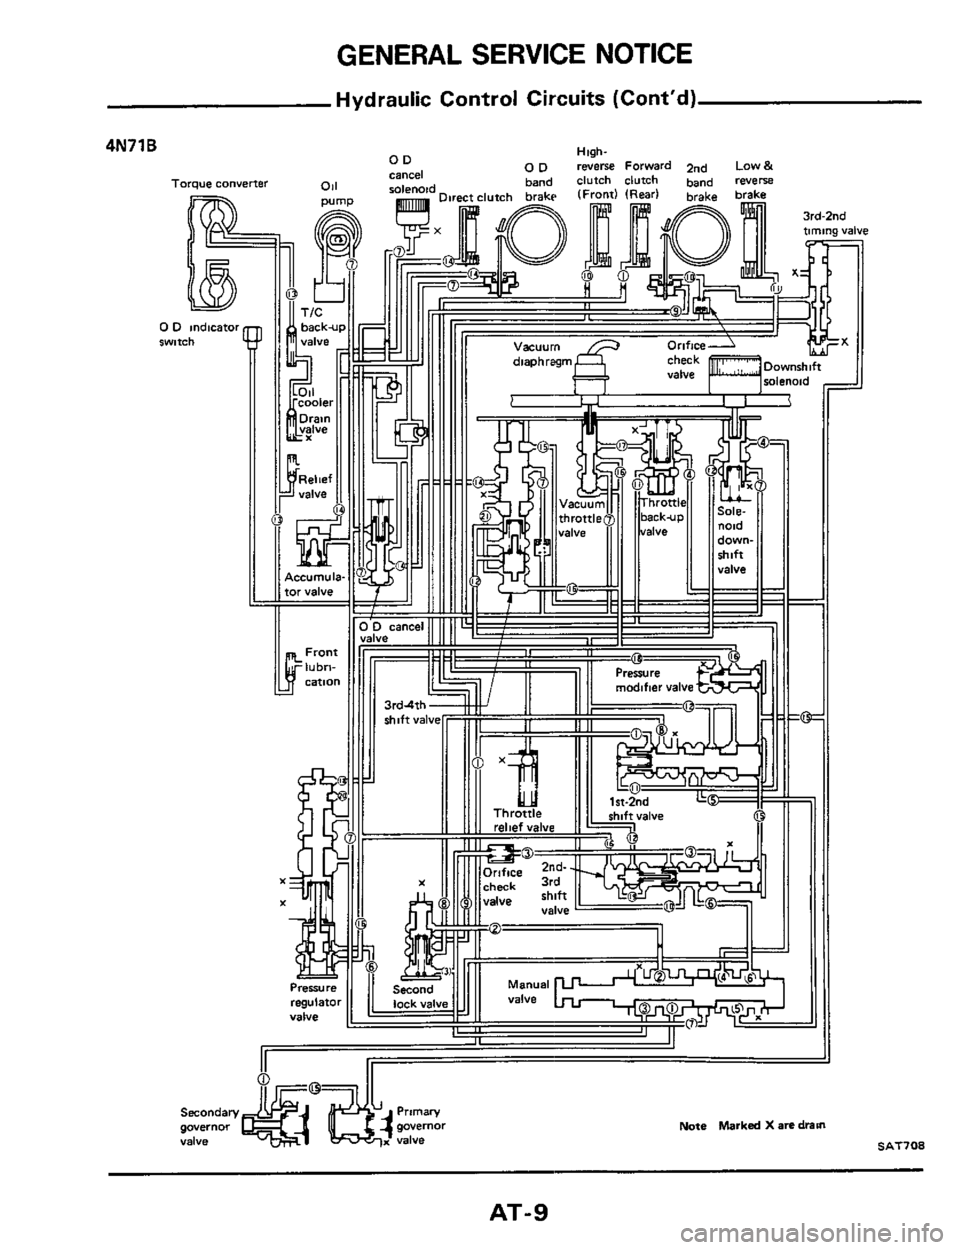 NISSAN 300ZX 1984 Z31 Automatic Transmission Workshop Manual, Page 9